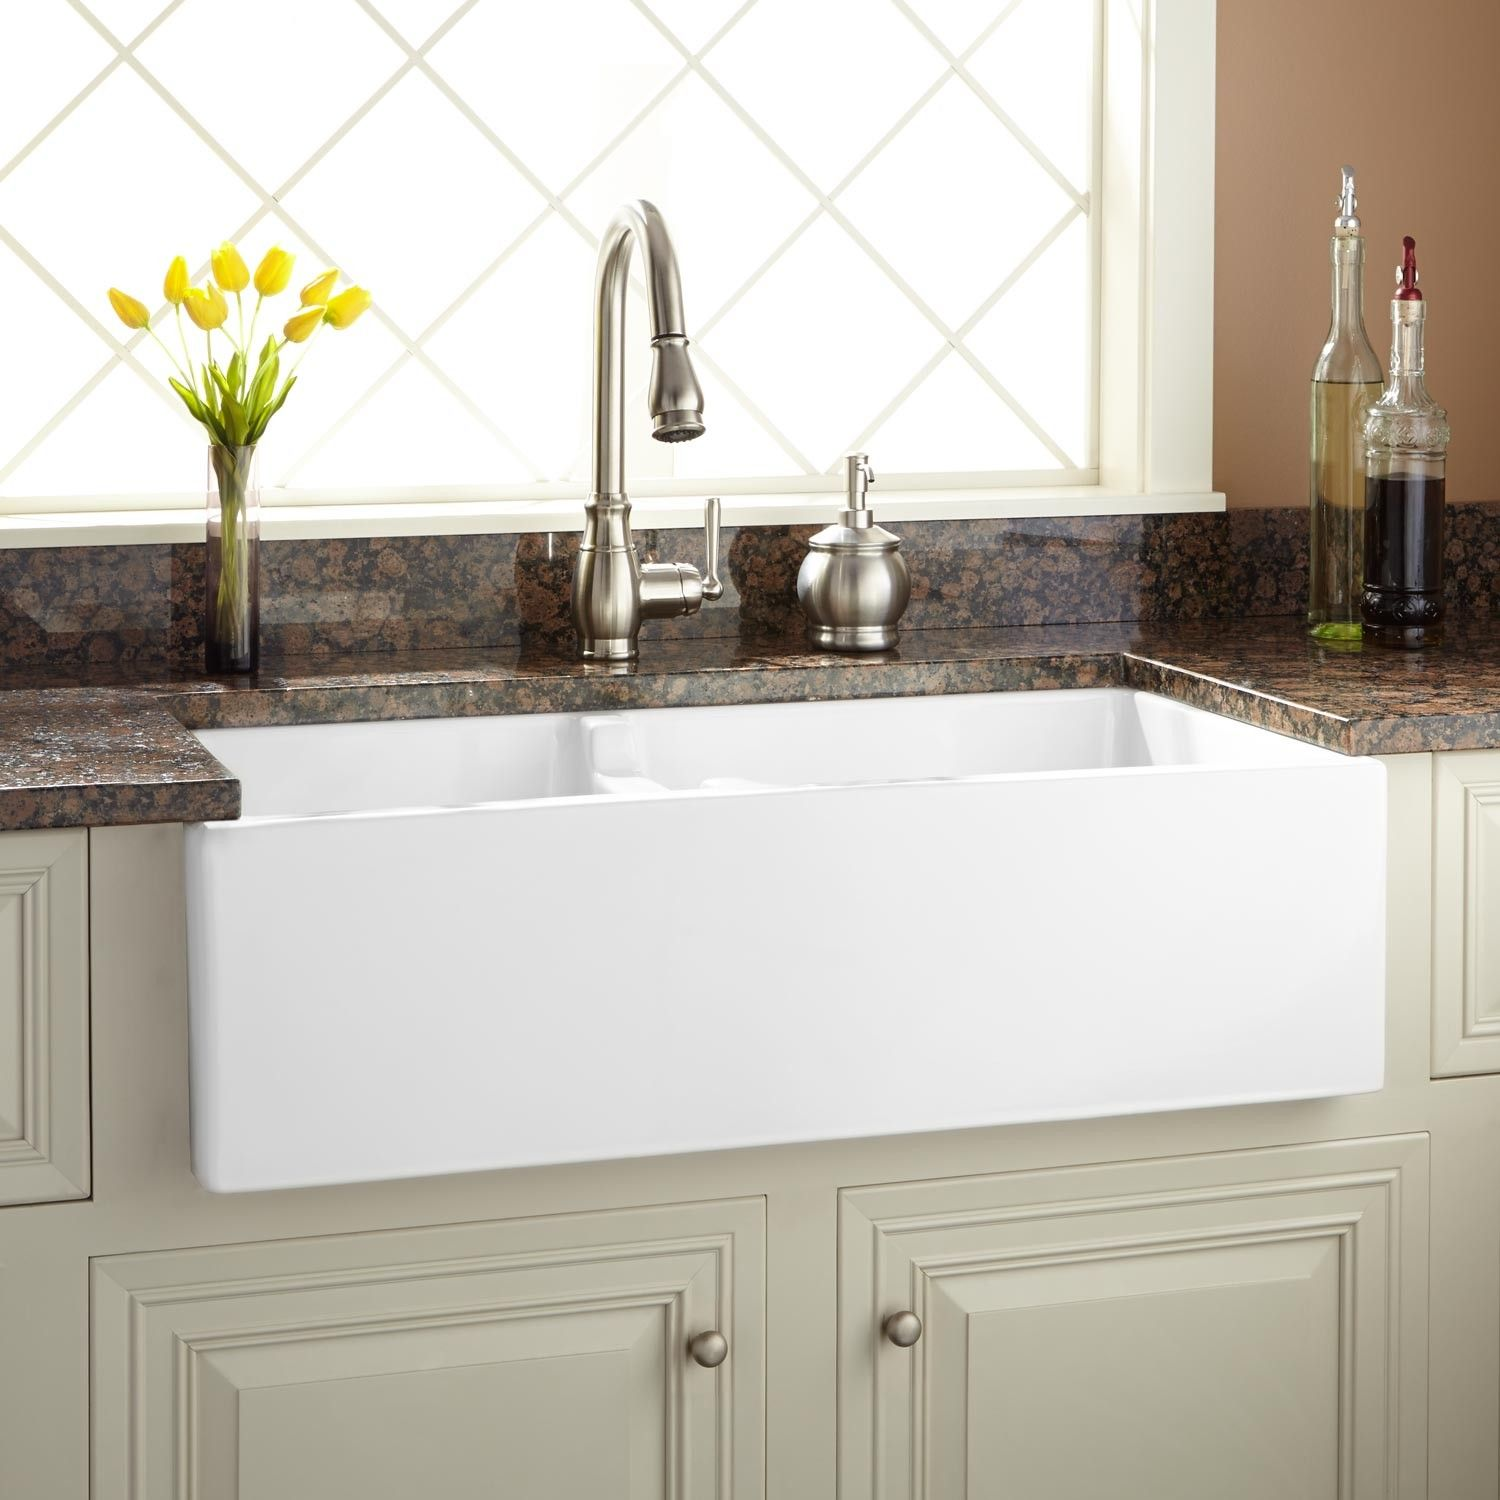 36   risinger 60 40 offset bowl fireclay farmhouse sink   smooth apron   white 36   risinger 60 40 offset bowl fireclay farmhouse sink   smooth      rh   pinterest com